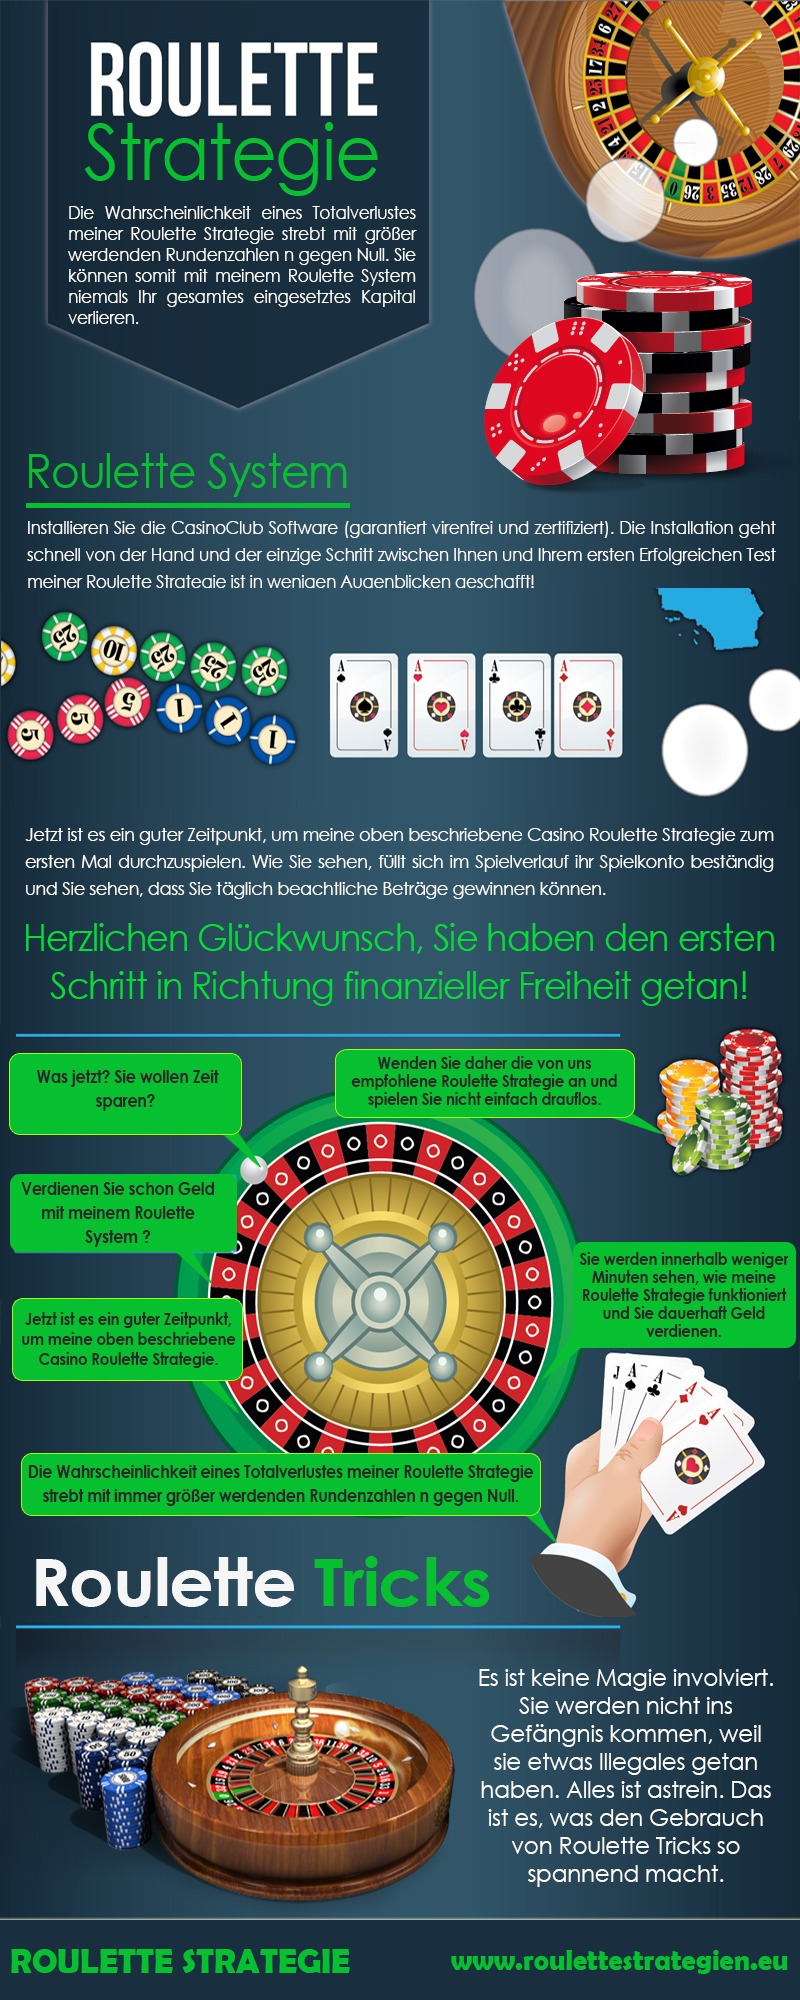 Roulette Strategie by RouletteSystem